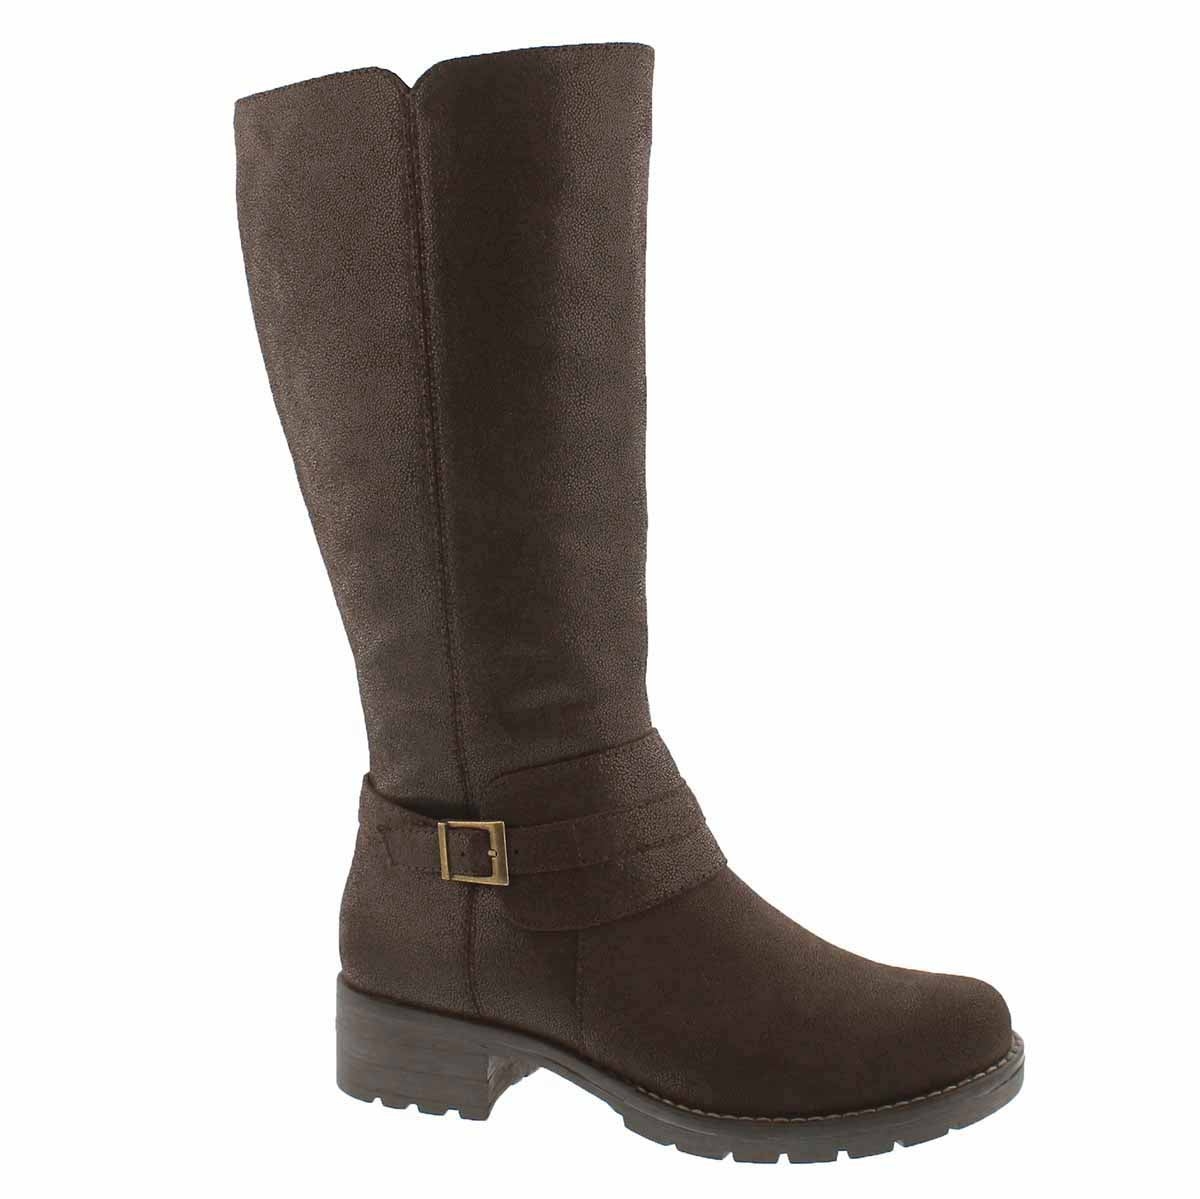 Women's DOMINIQUE 2 brown tall riding boots